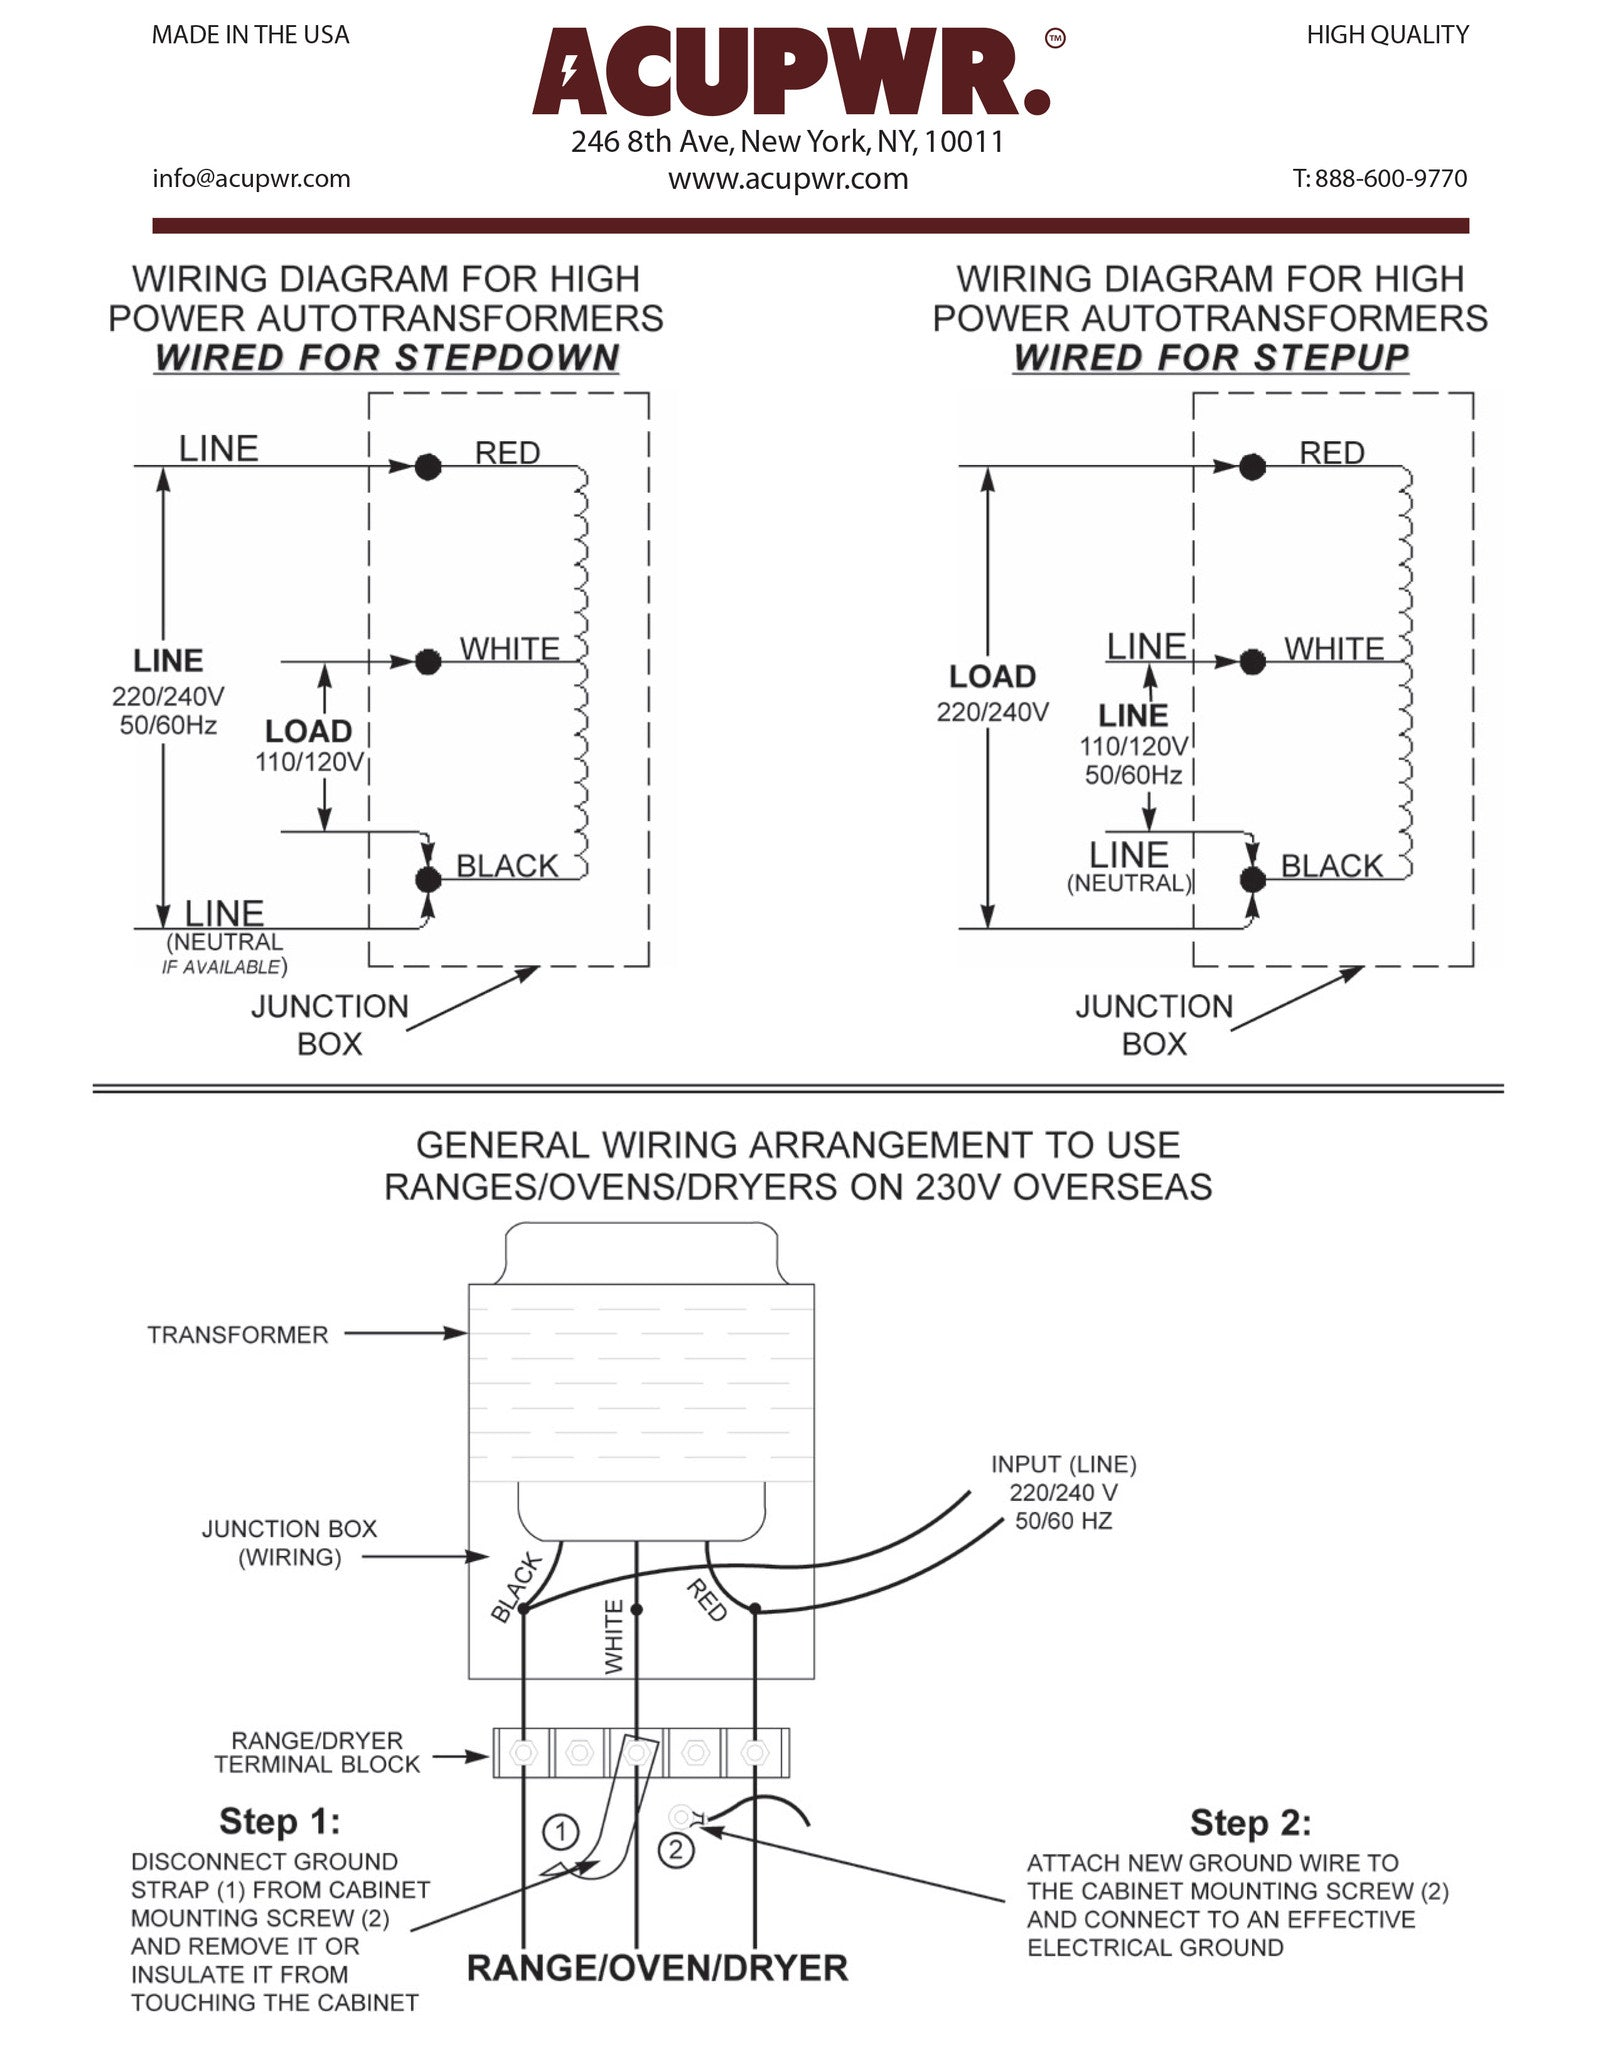 Acme transformer t s wiring diagram